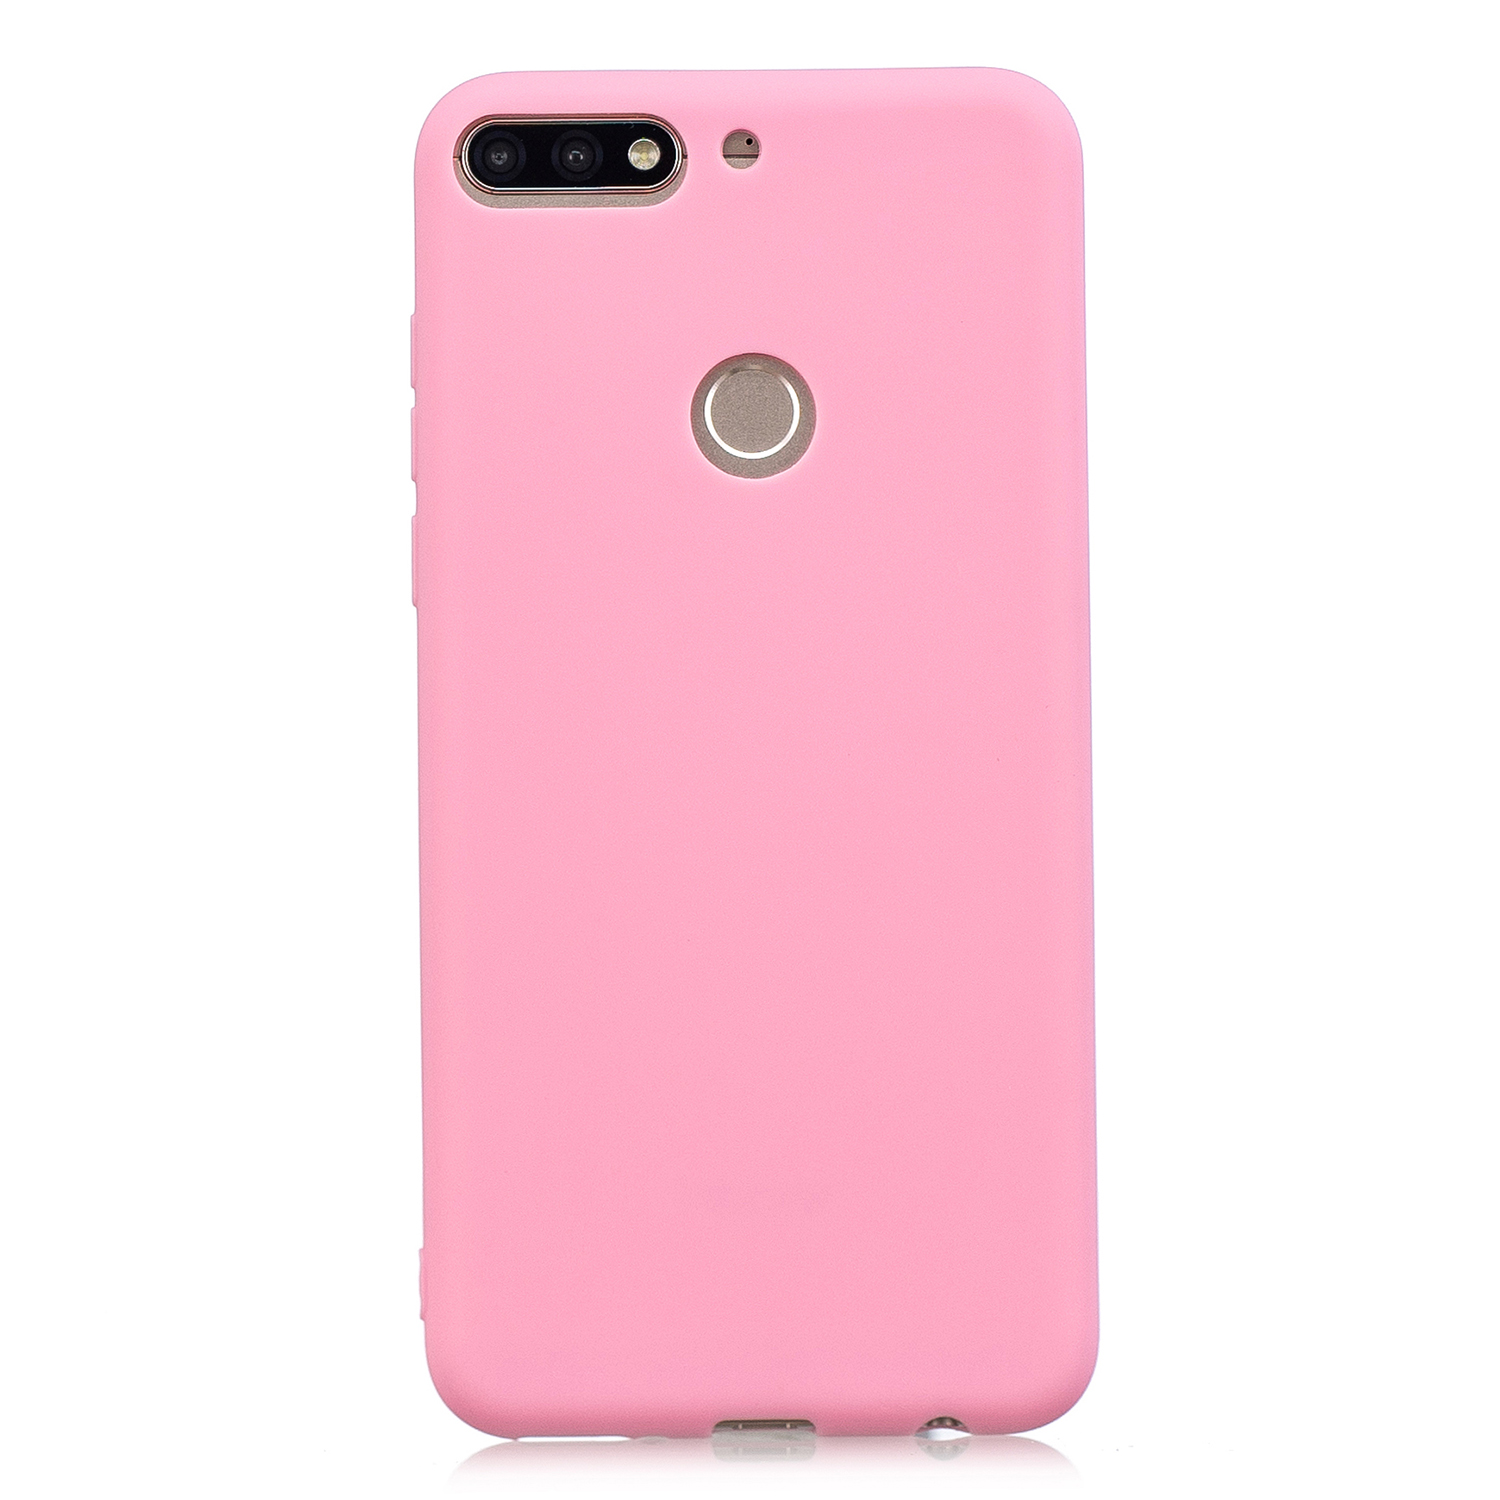 for HUAWEI Y9 2018 Lovely Candy Color Matte TPU Anti-scratch Non-slip Protective Cover Back Case dark pink